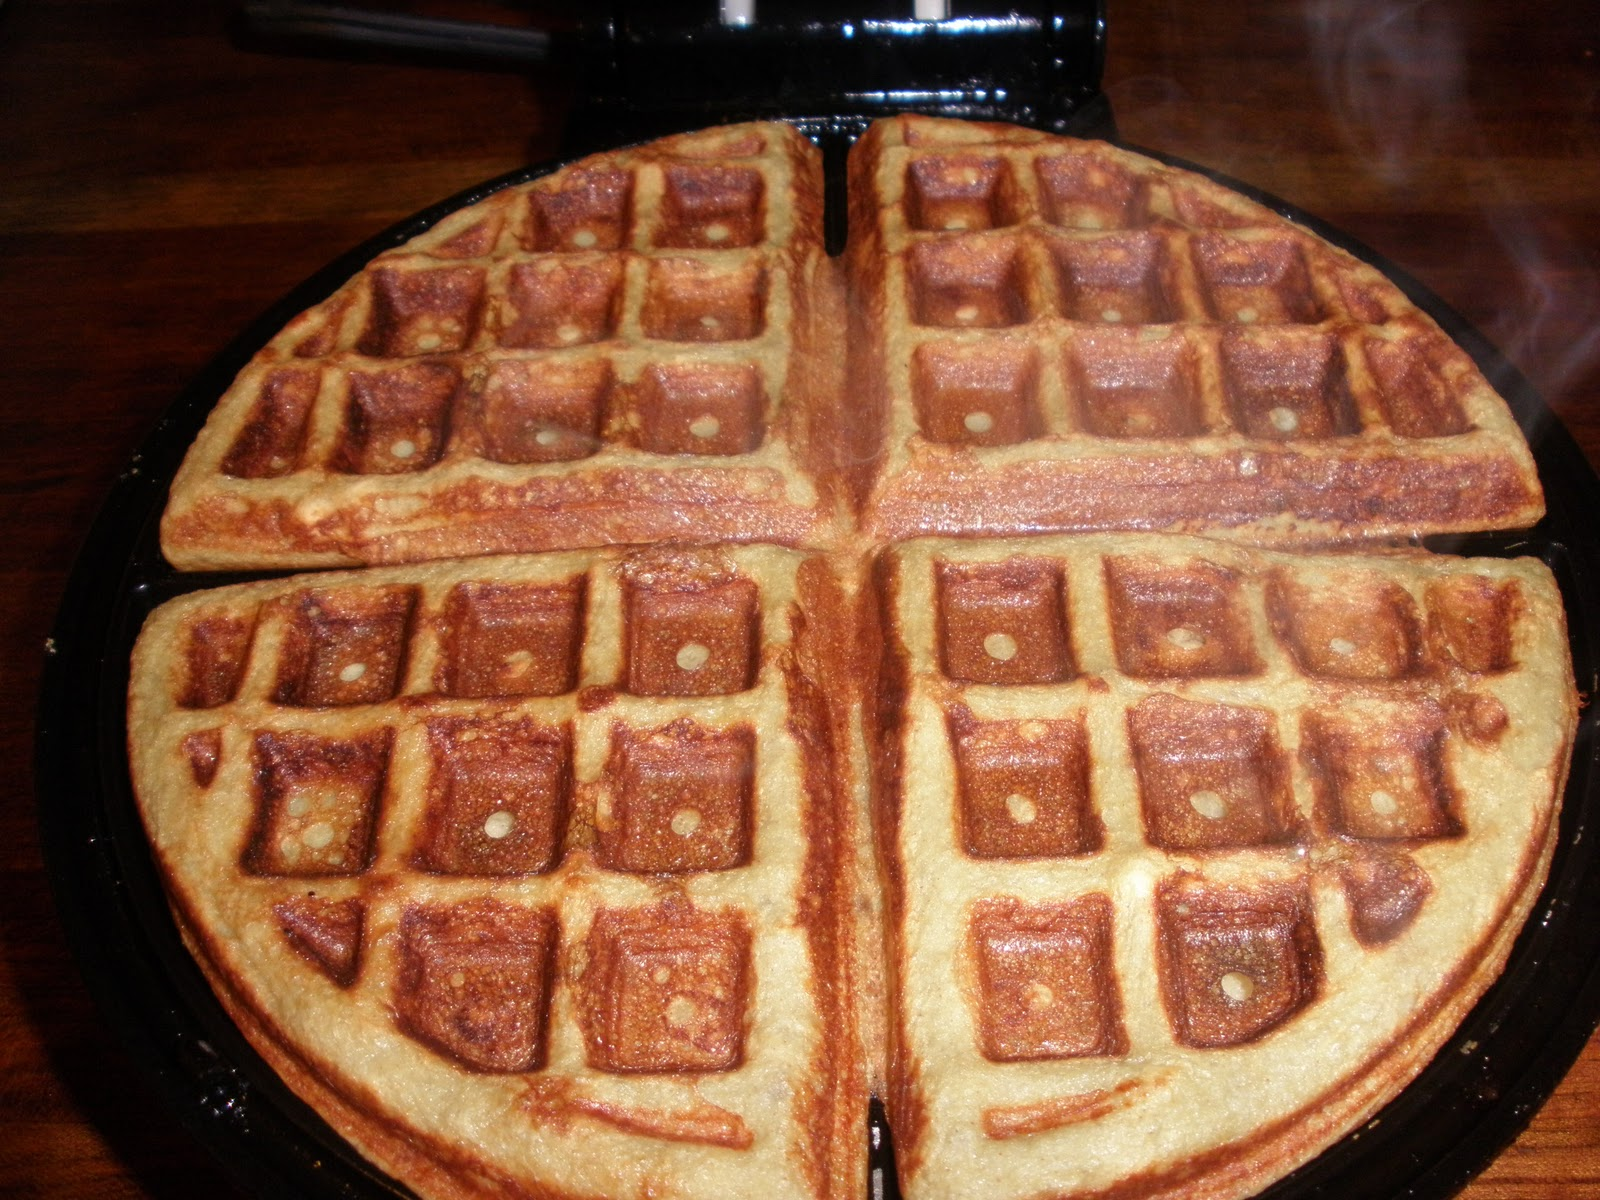 Kris's Frugal Life: Coconut Flour Waffles